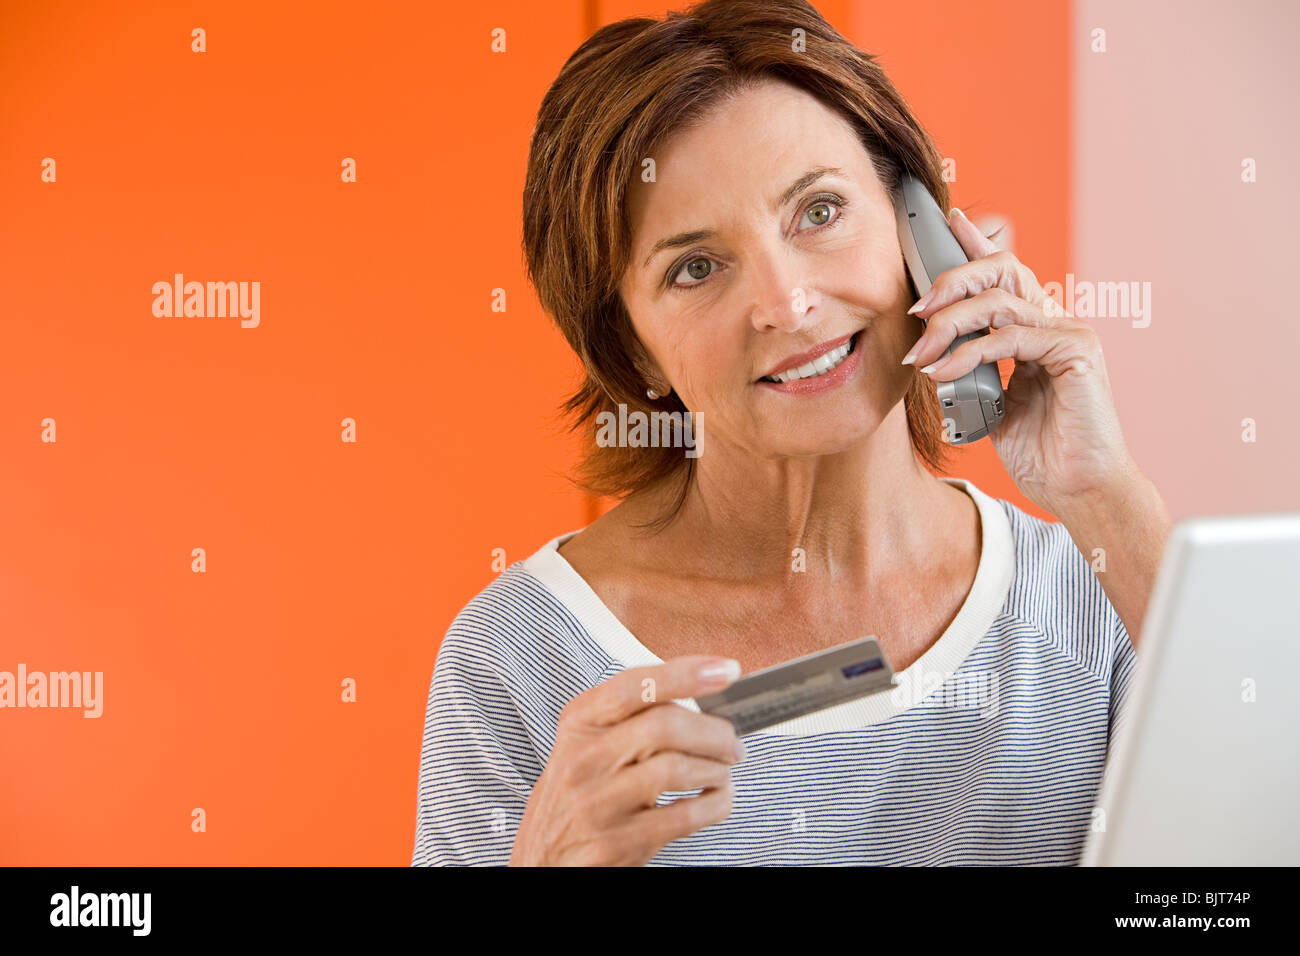 A woman telephone banking - Stock Image